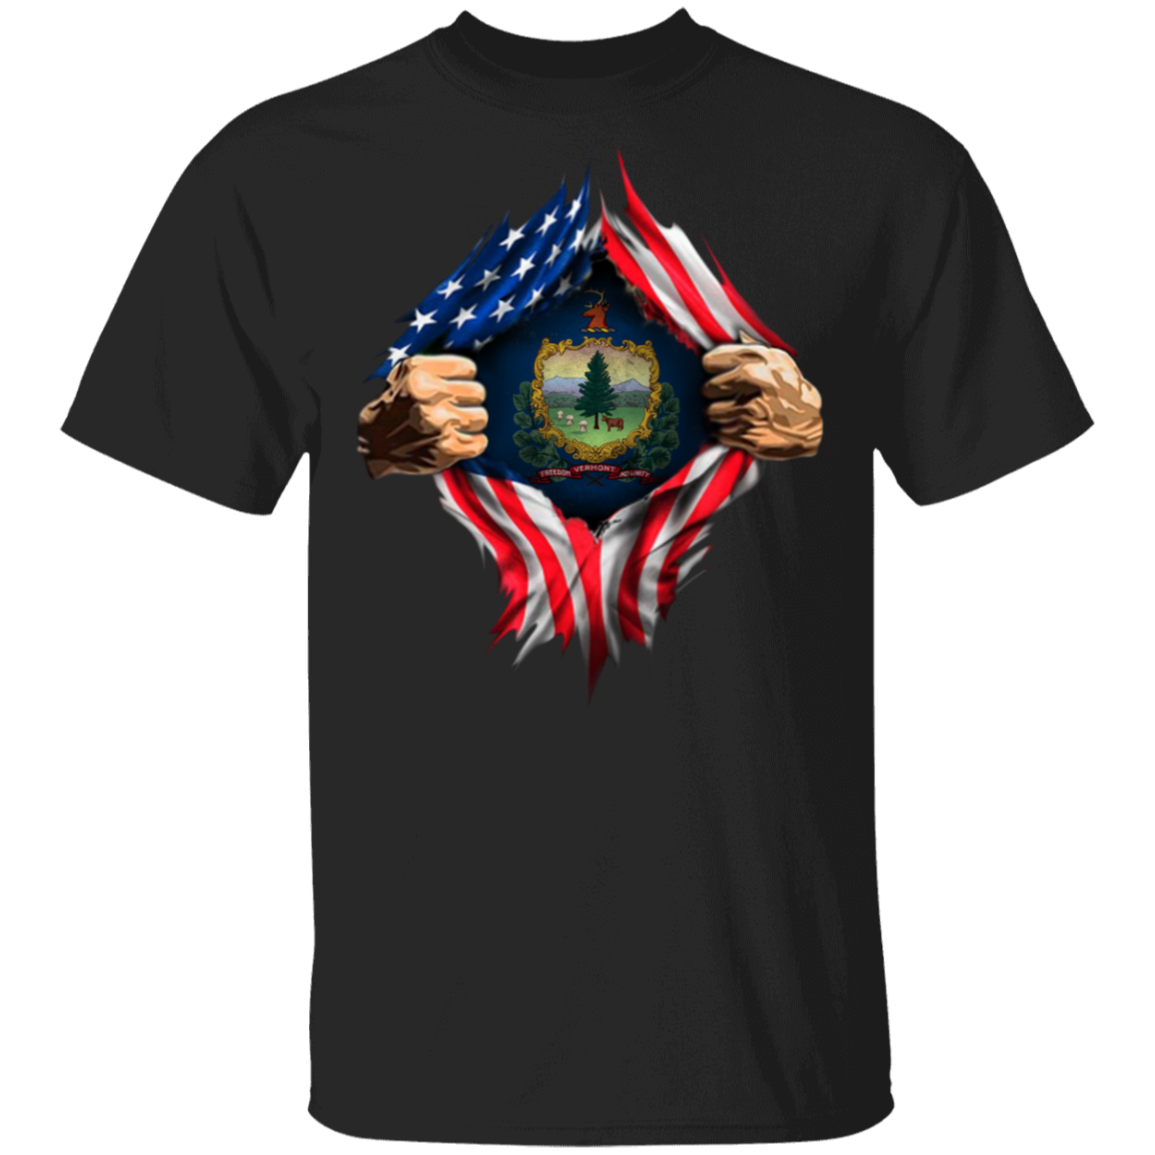 Vermont Heartbeat Inside American Flag T-Shirt Fourth Of July Shirt Ideas